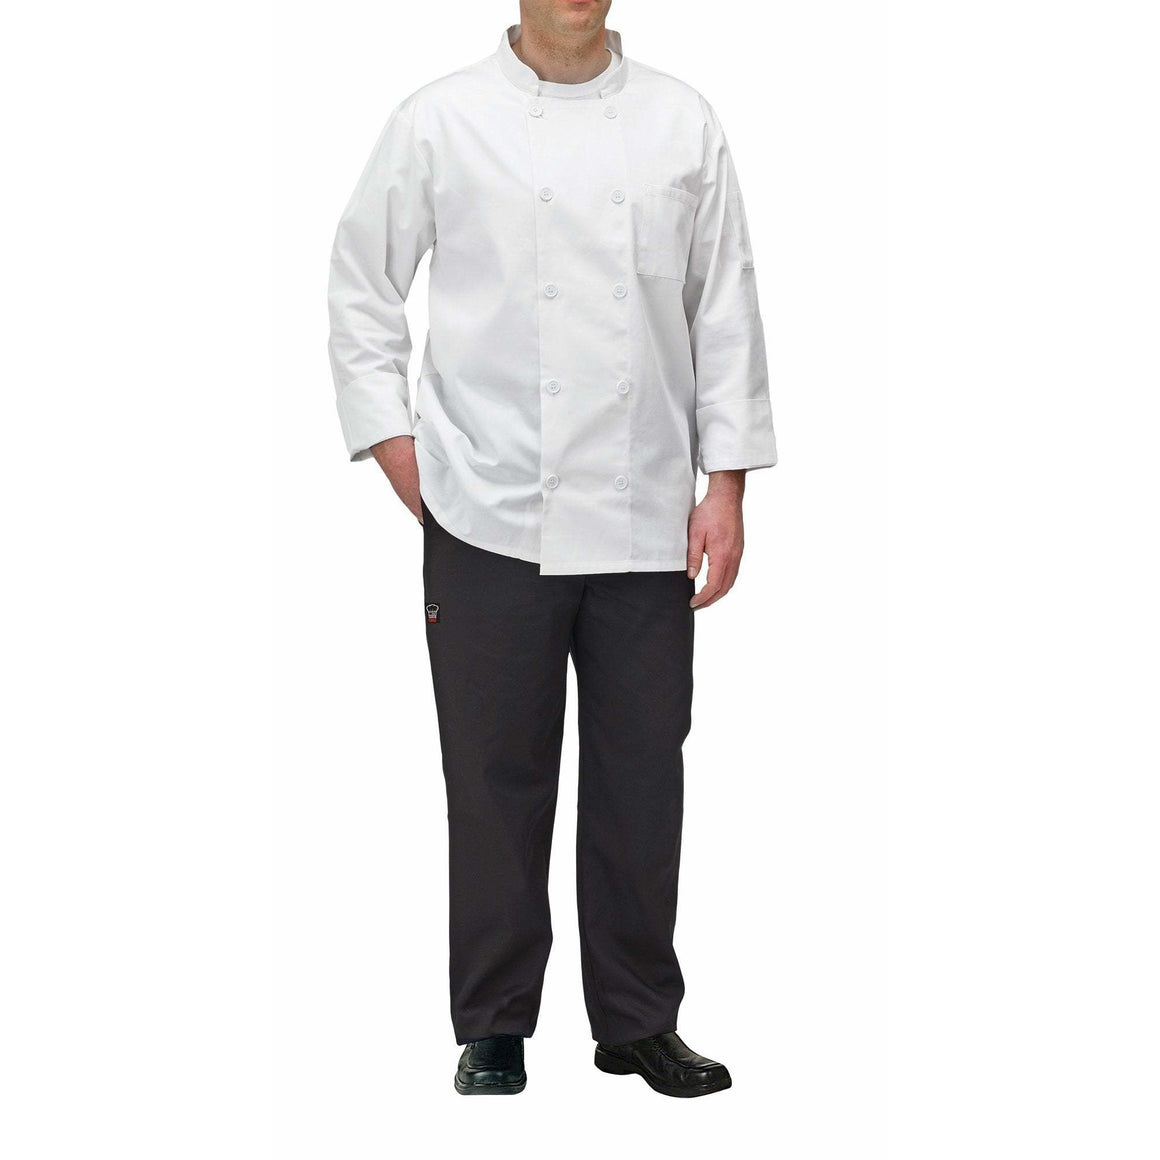 Winco - UNF-5WXL - Chef jacket, white, XL - Apparel - Maltese & Co New and Used  restaurant Equipment